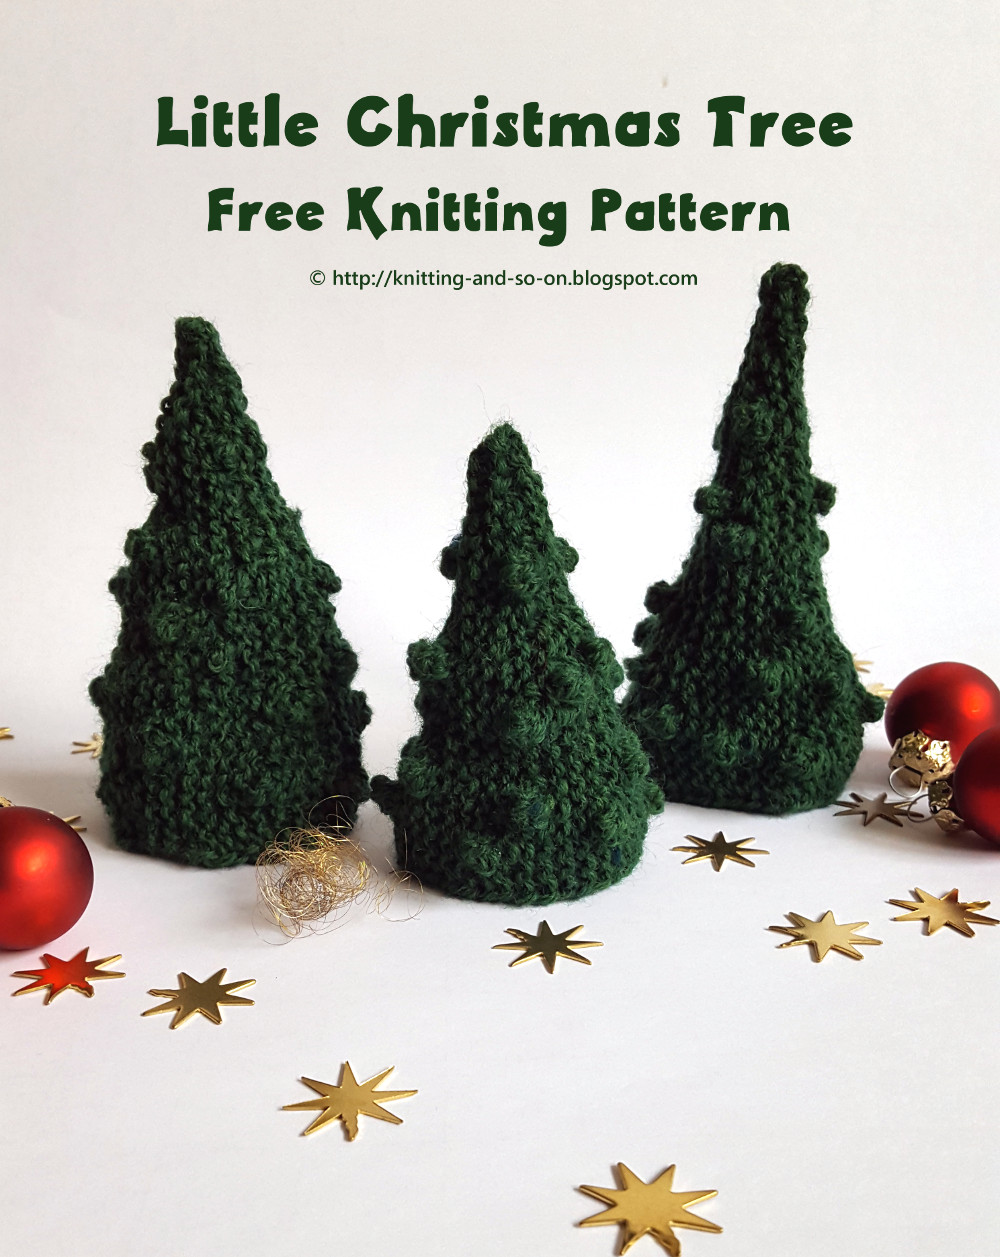 Knitting Lace Christmas Tree Pattern : Knitting and so on: O Christmas Tree